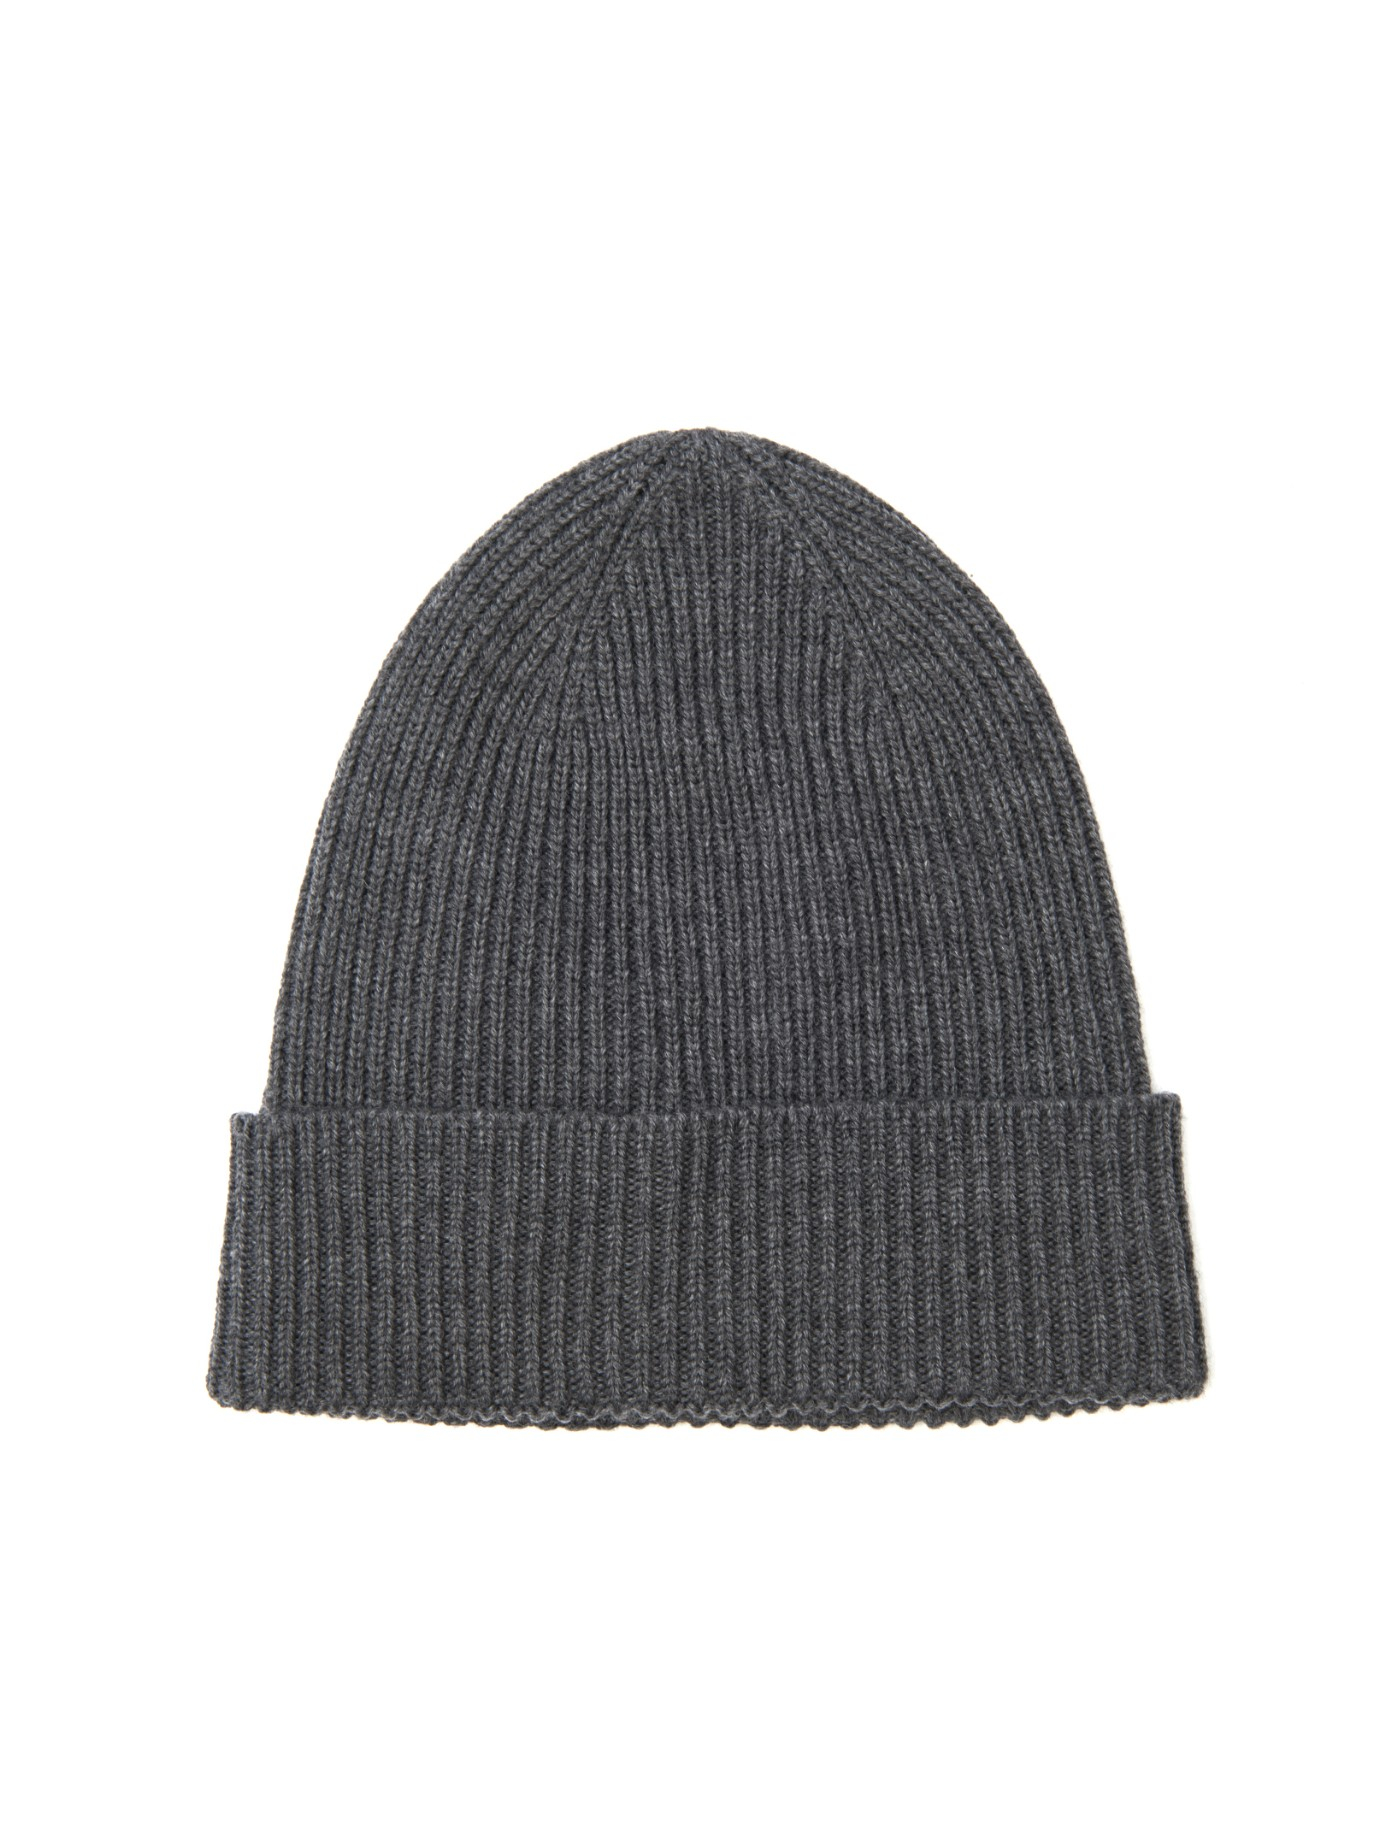 575f4938125 Moncler Ribbed-Knit Wool Beanie Hat in Gray for Men - Lyst